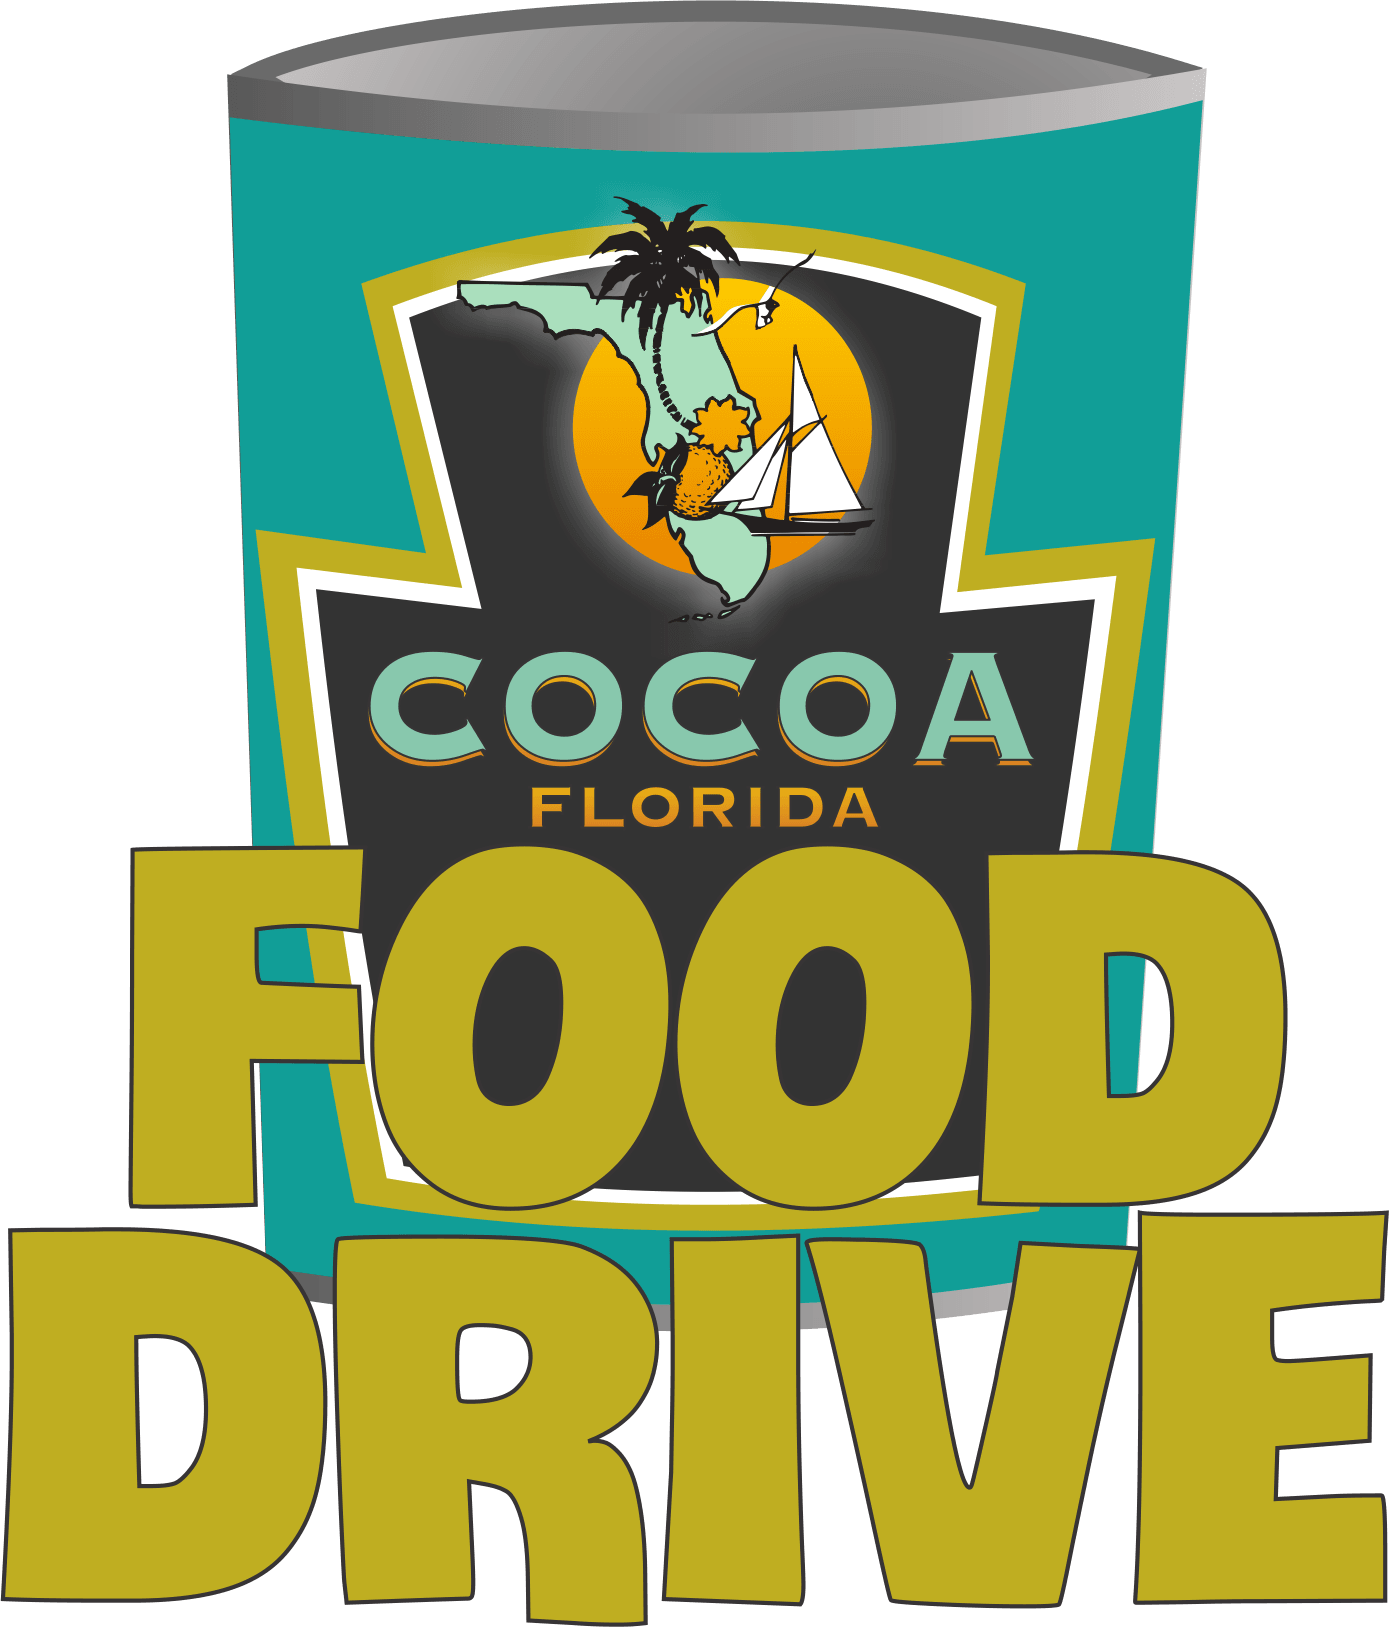 Cocoa fl official website. Donation clipart canned food drive